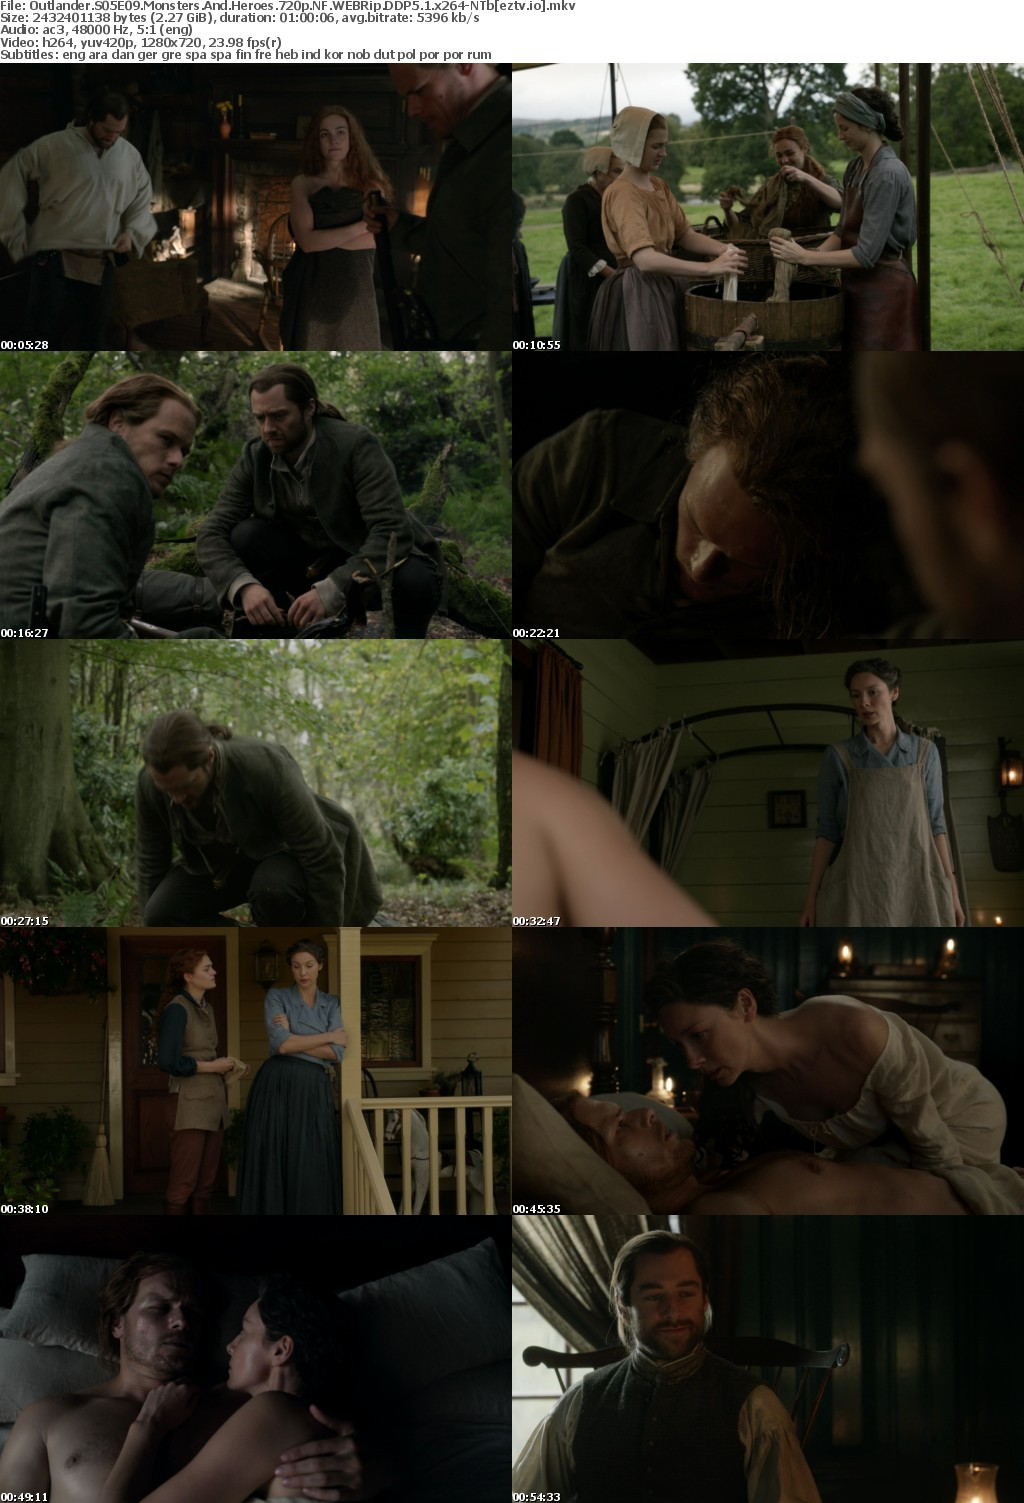 Outlander S05E09 Monsters And Heroes 720p NF WEBRip DDP5 1 x264-NTb